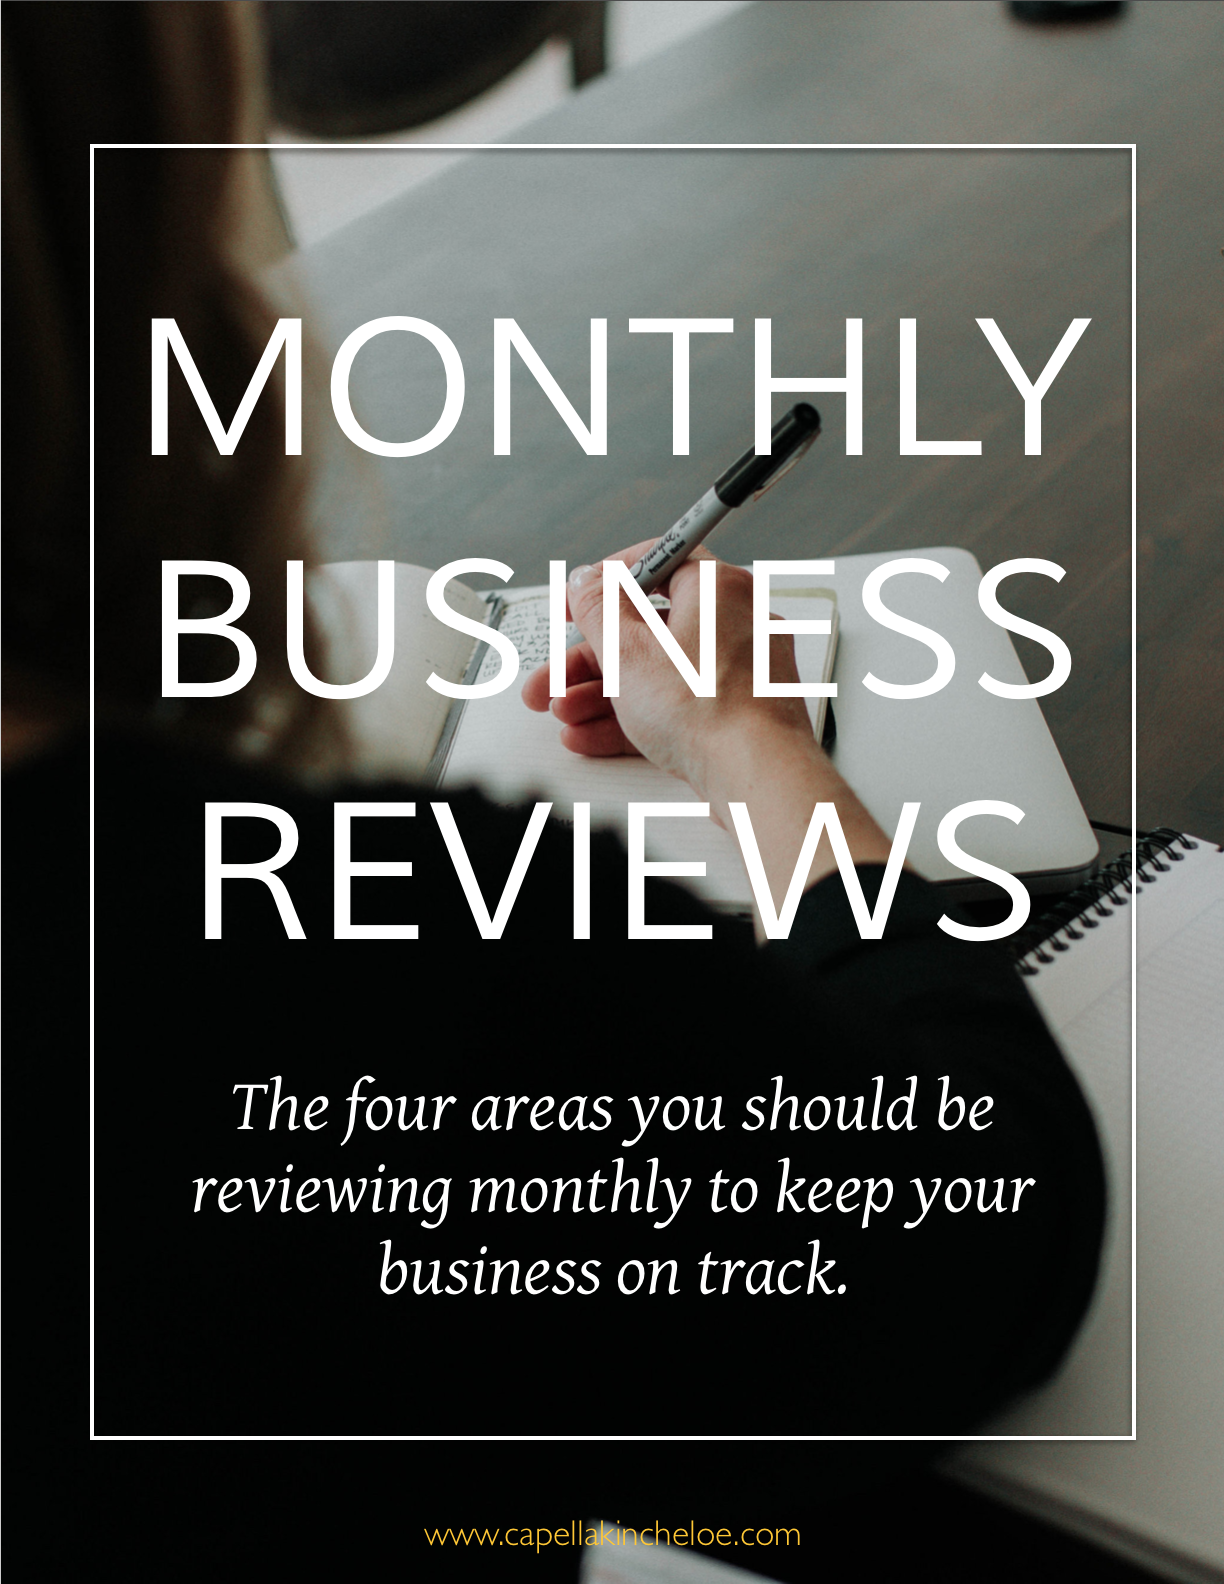 Want to know how your business stacks up? Schedule monthly reviews to make sure that your business is on track in four different areas. You'll be sure to know what needs more attention and what is growing faster than you imagined!